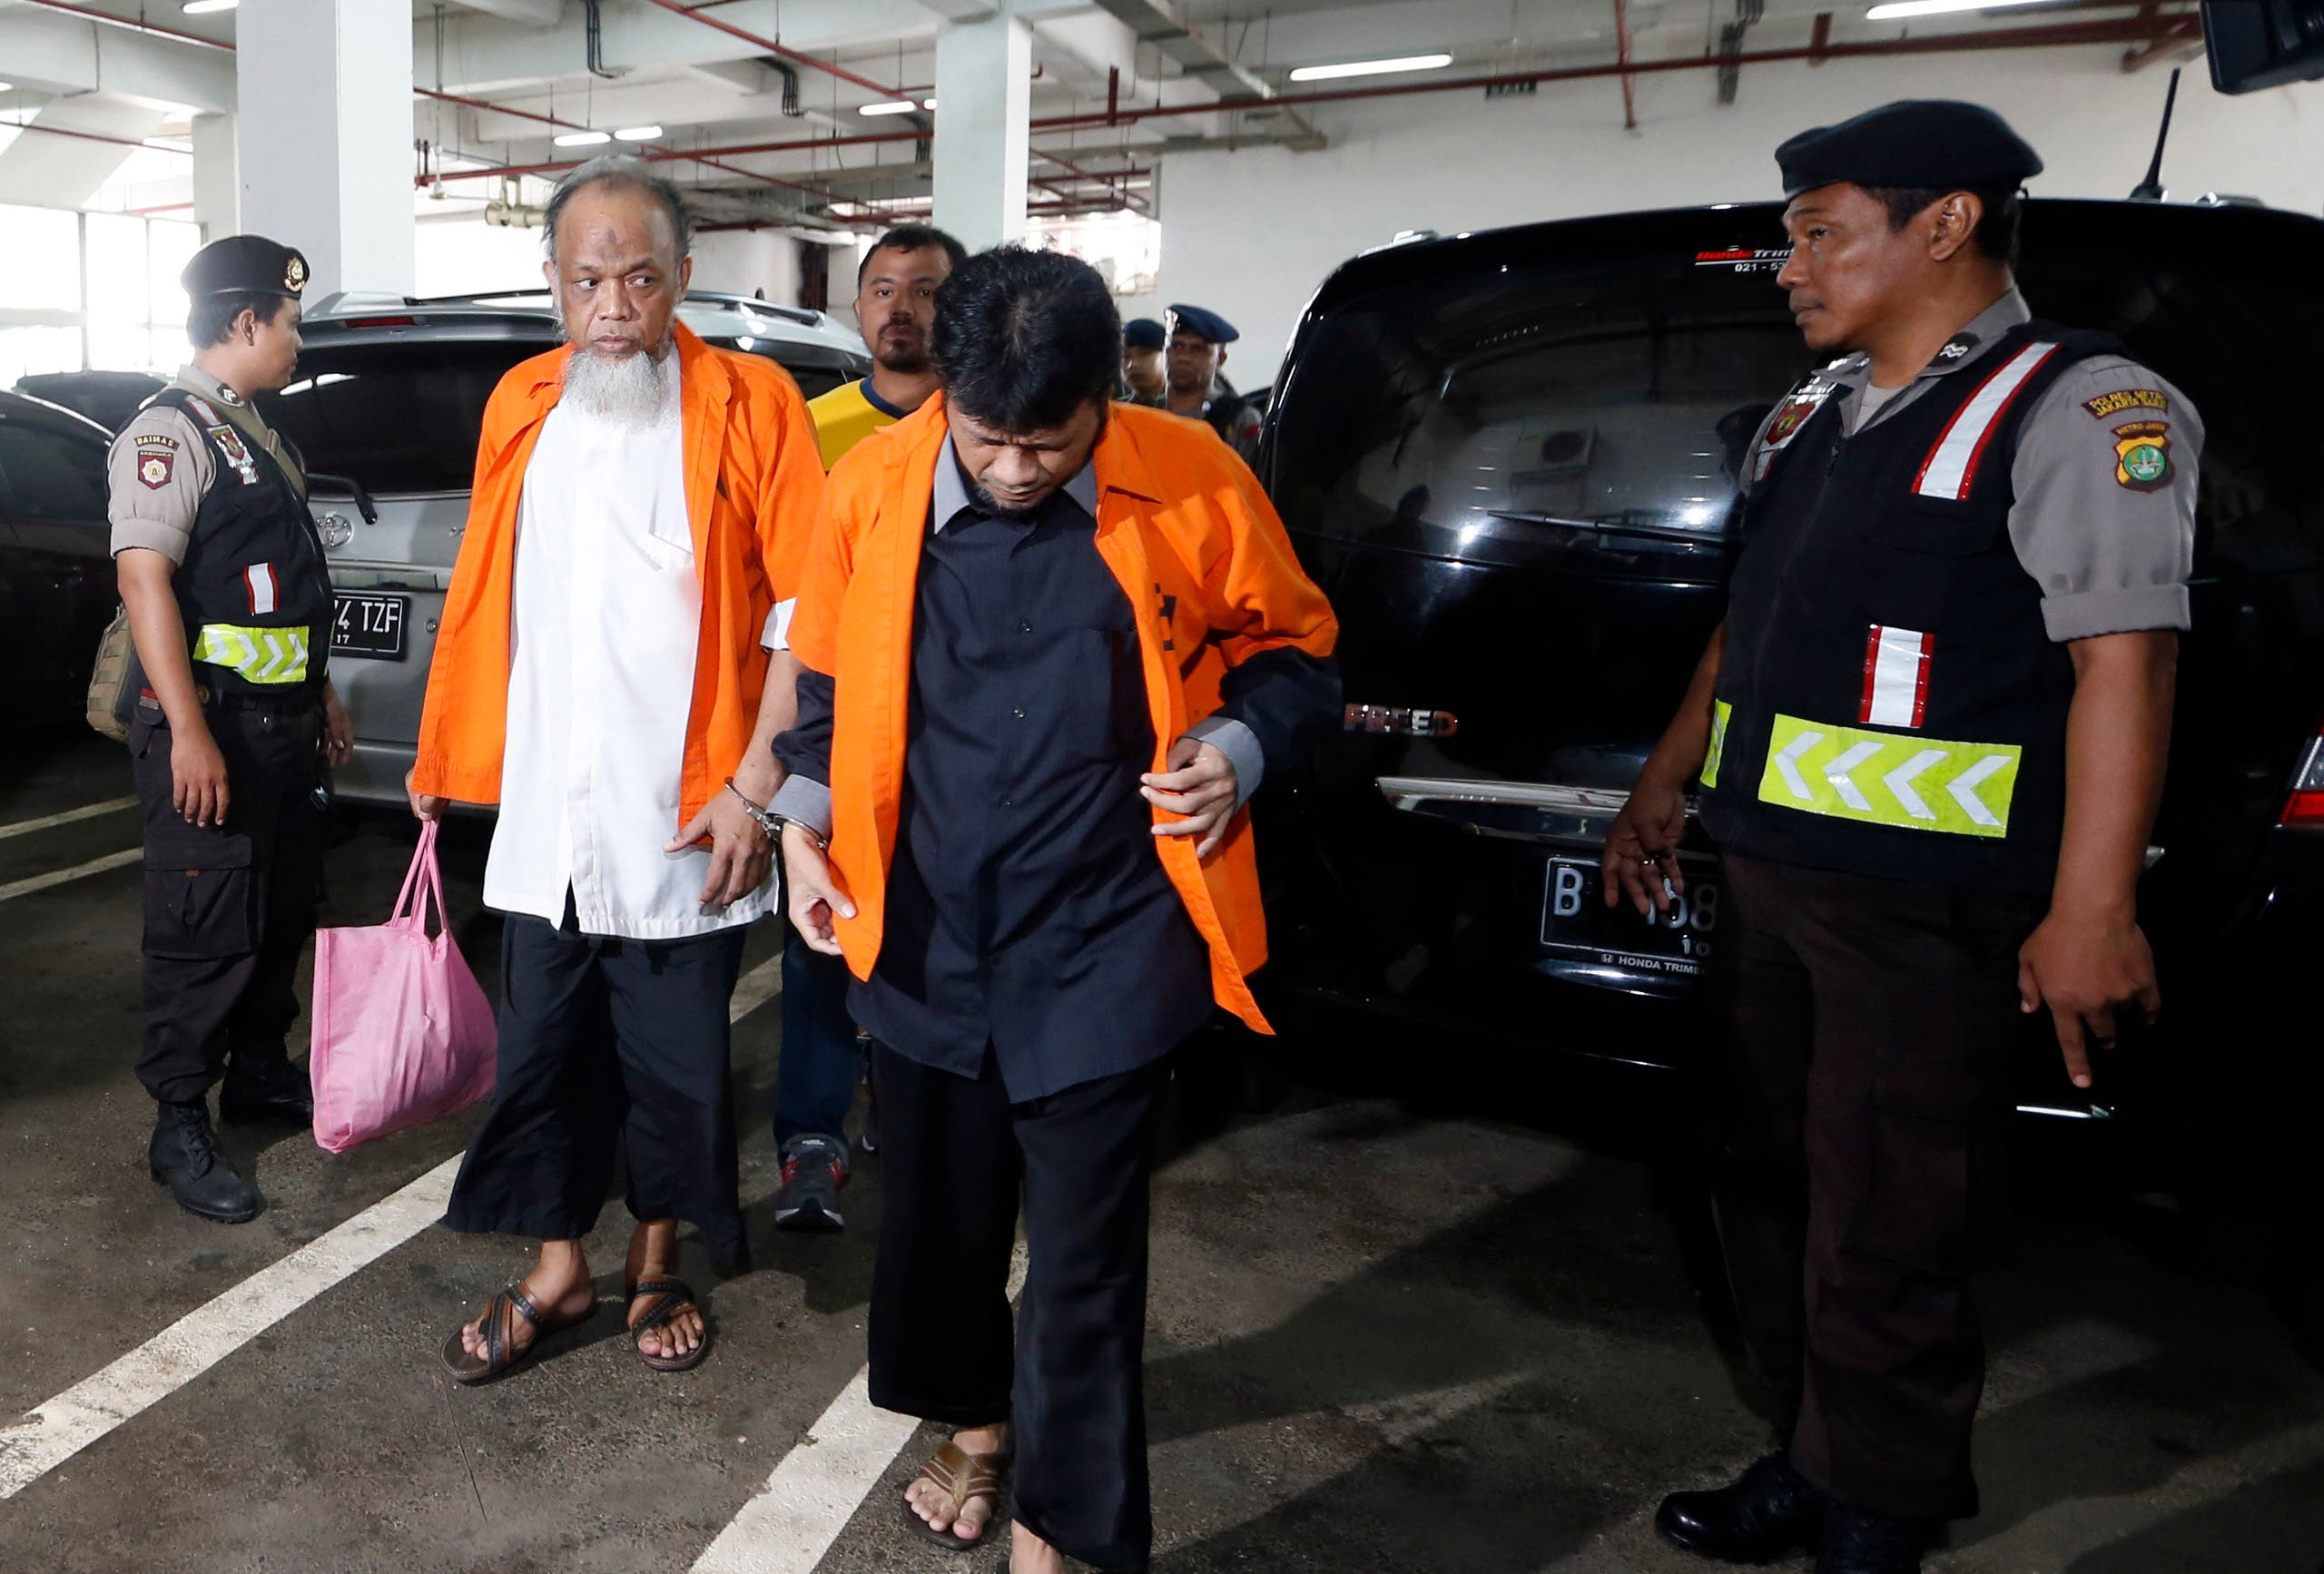 Indonesian policemen stand guard as Muhammad Fachry (2nd R), also known as Tuah Febriansyah and Muhammad Basri (2nd L), who are accused of supporting Islamic State, arrive for their trial at the West Jakarta court in Jakarta, February 9, 2016.